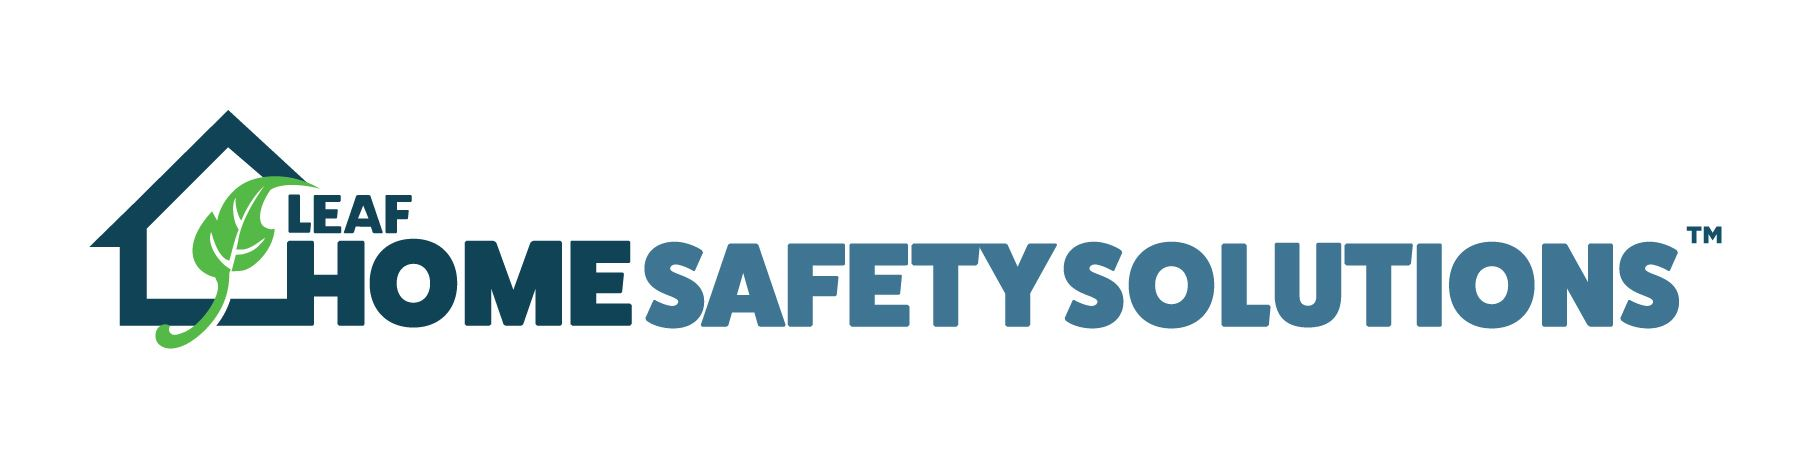 Leaf home Safety Solutions logo